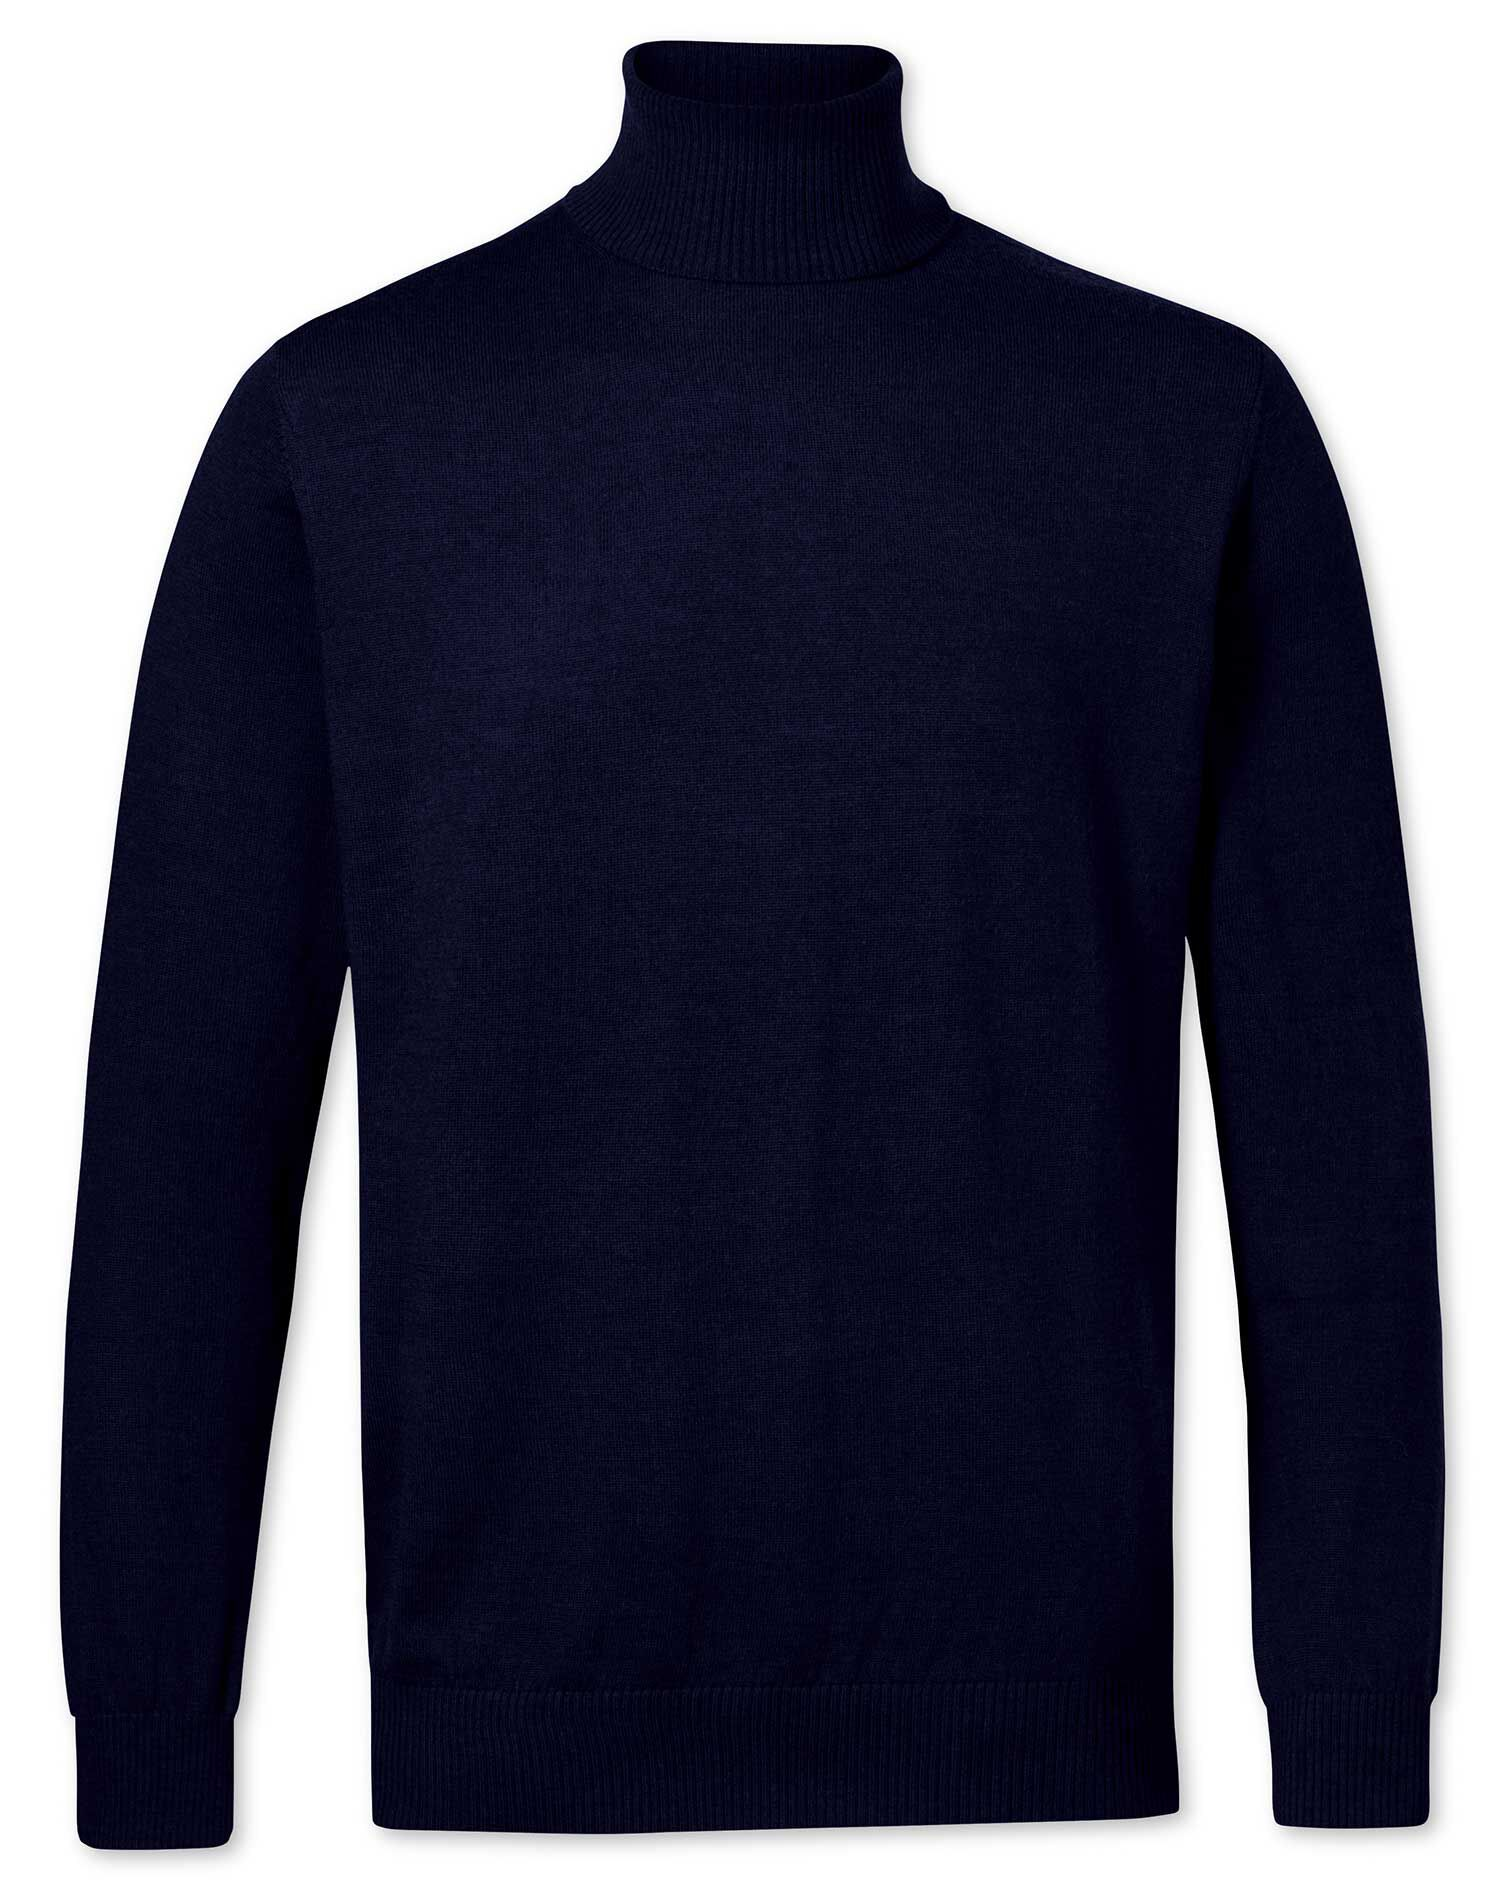 Navy Merino Wool Roll Neck Jumper Size XL by Charles Tyrwhitt